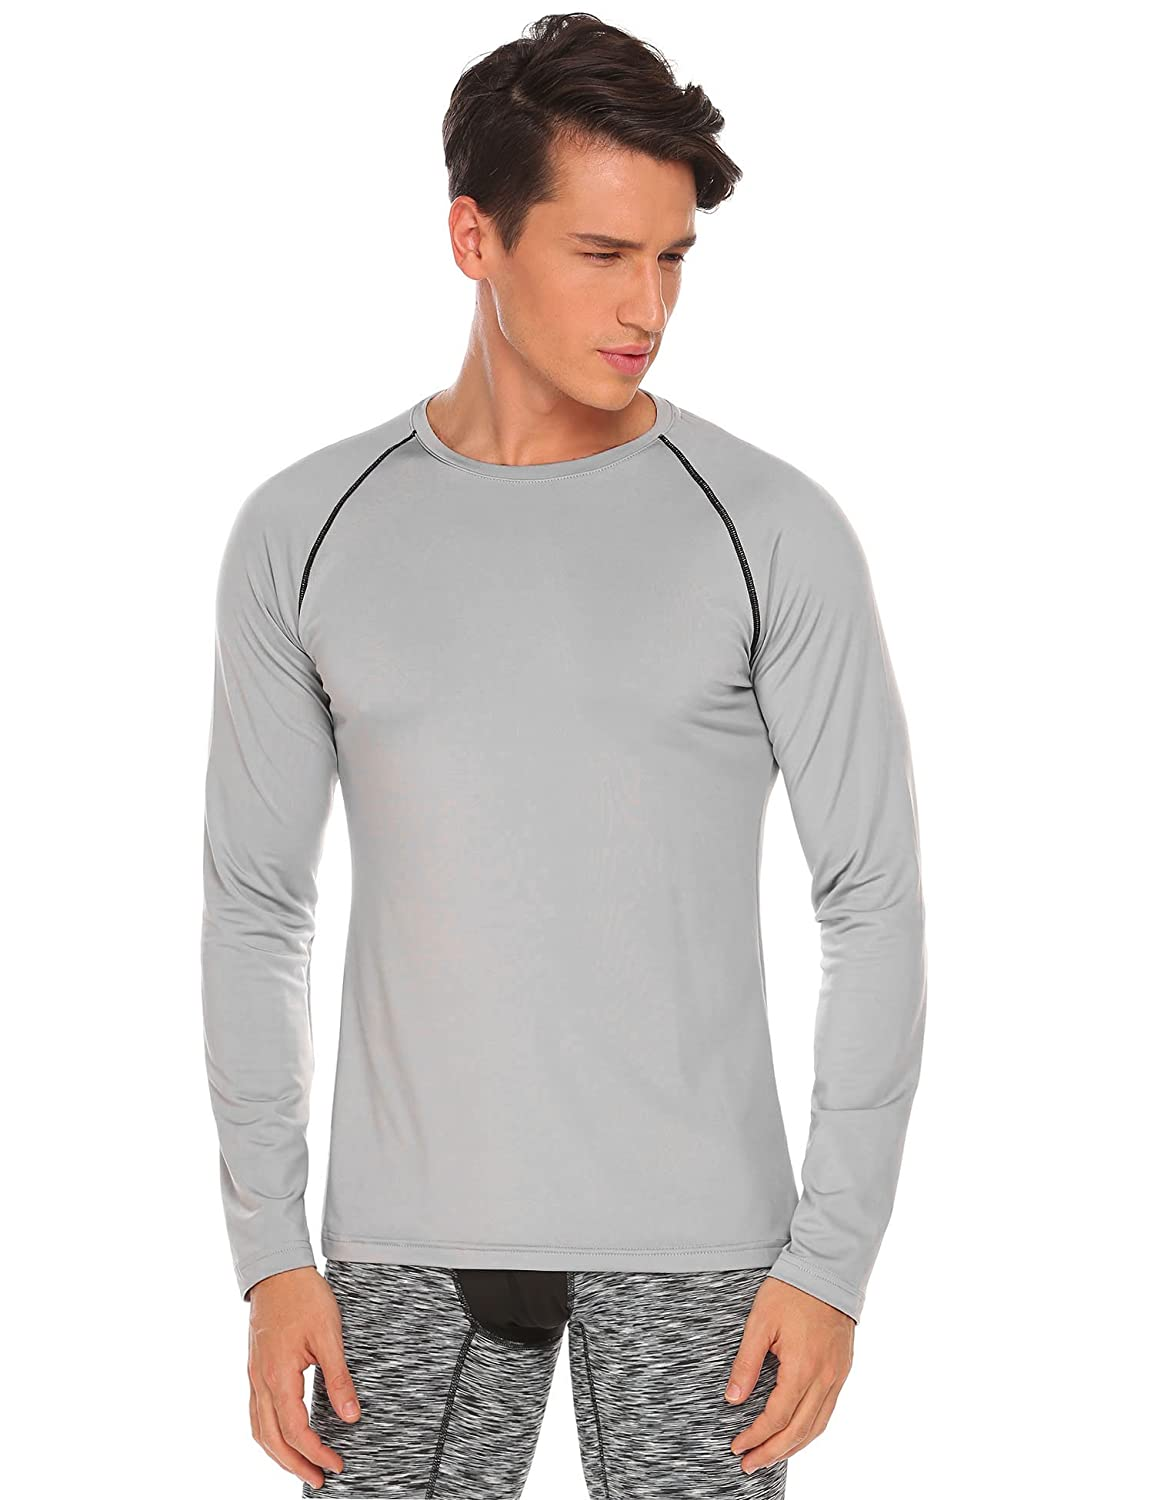 7074ce3ca Amazon.com: COOFANDY Mens Long Sleeve Lace up Cotton T Shirts Casual Tops  Tee Classic Fit Basic Shirts: Clothing